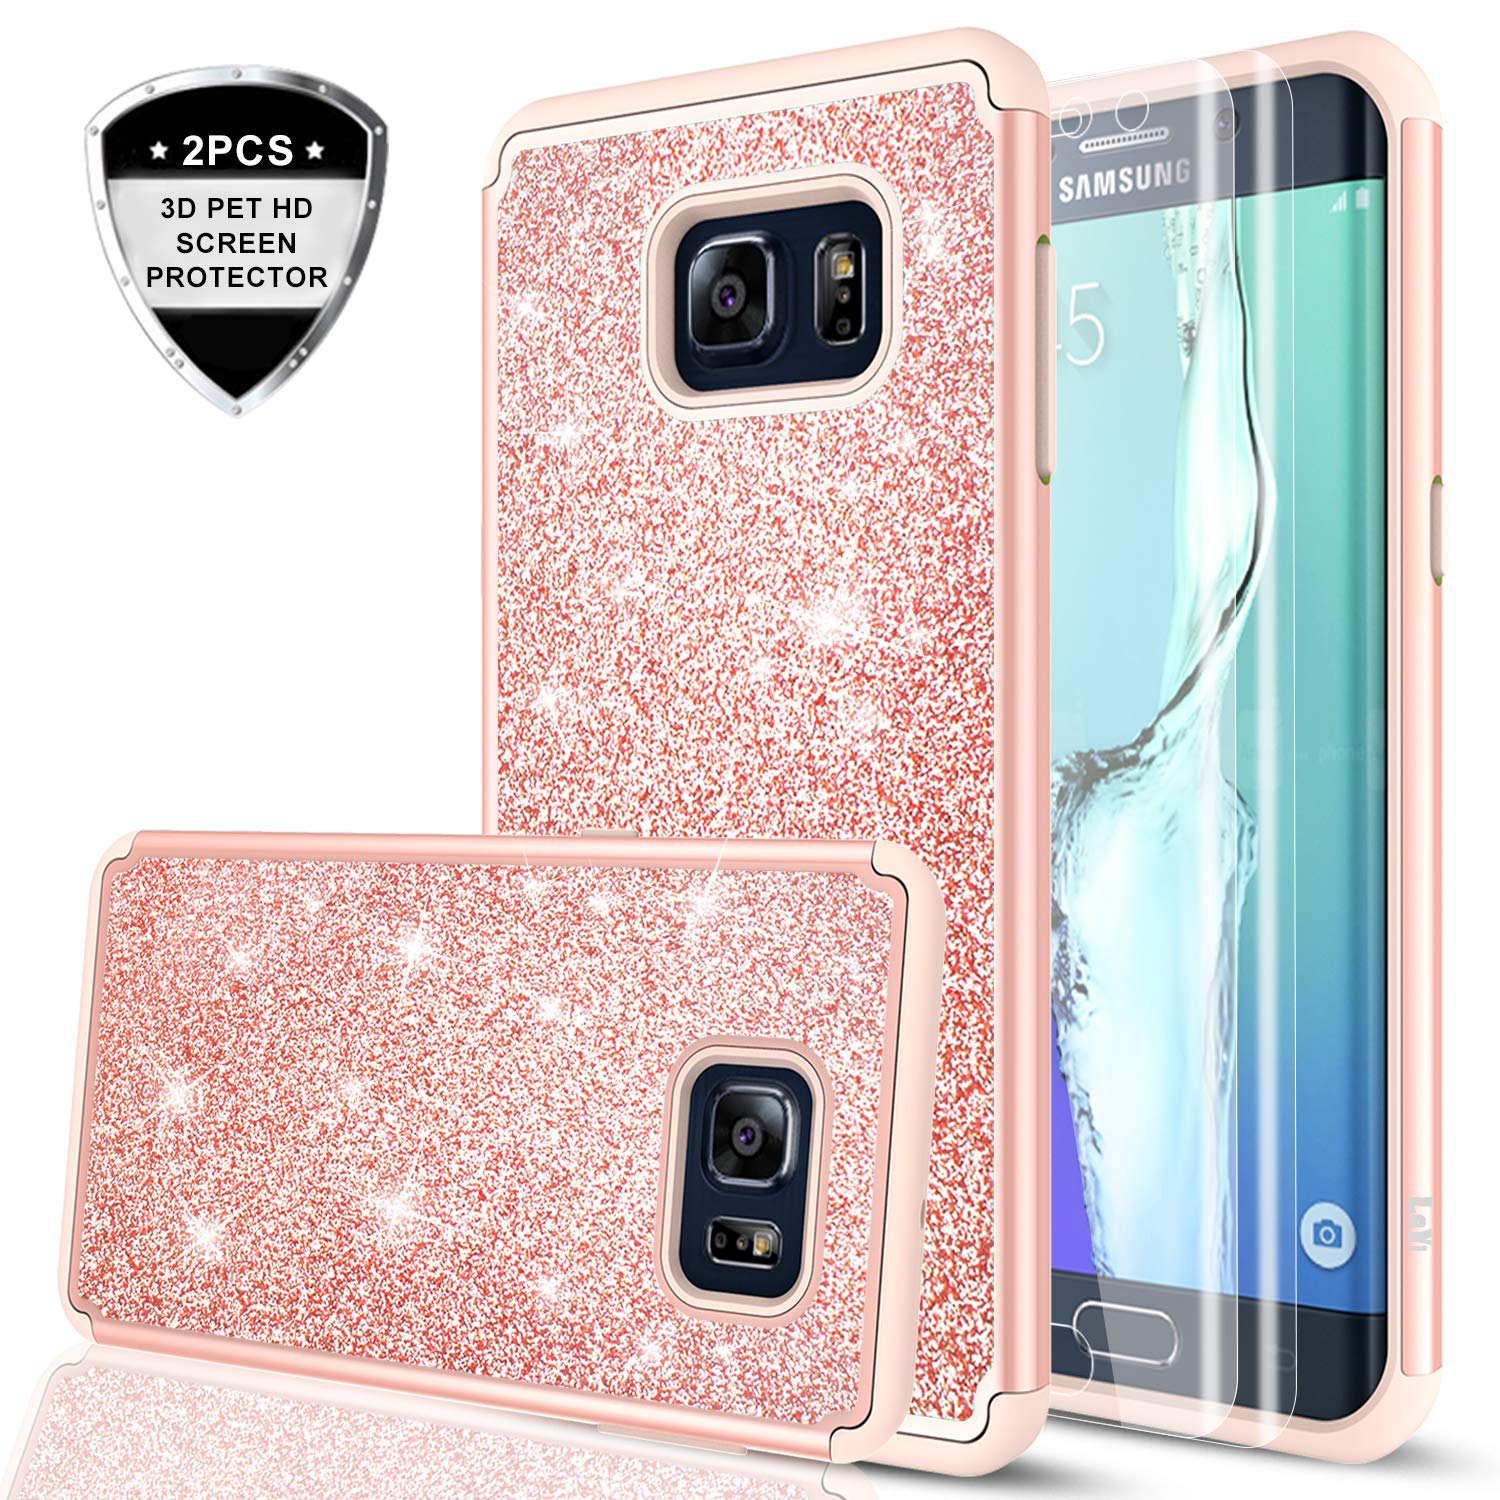 Samsung Galaxy S6 Edge Plus Case Glitter Top Deals Lowest Price Protection With 3d Pte Screen Protector 2 Pack